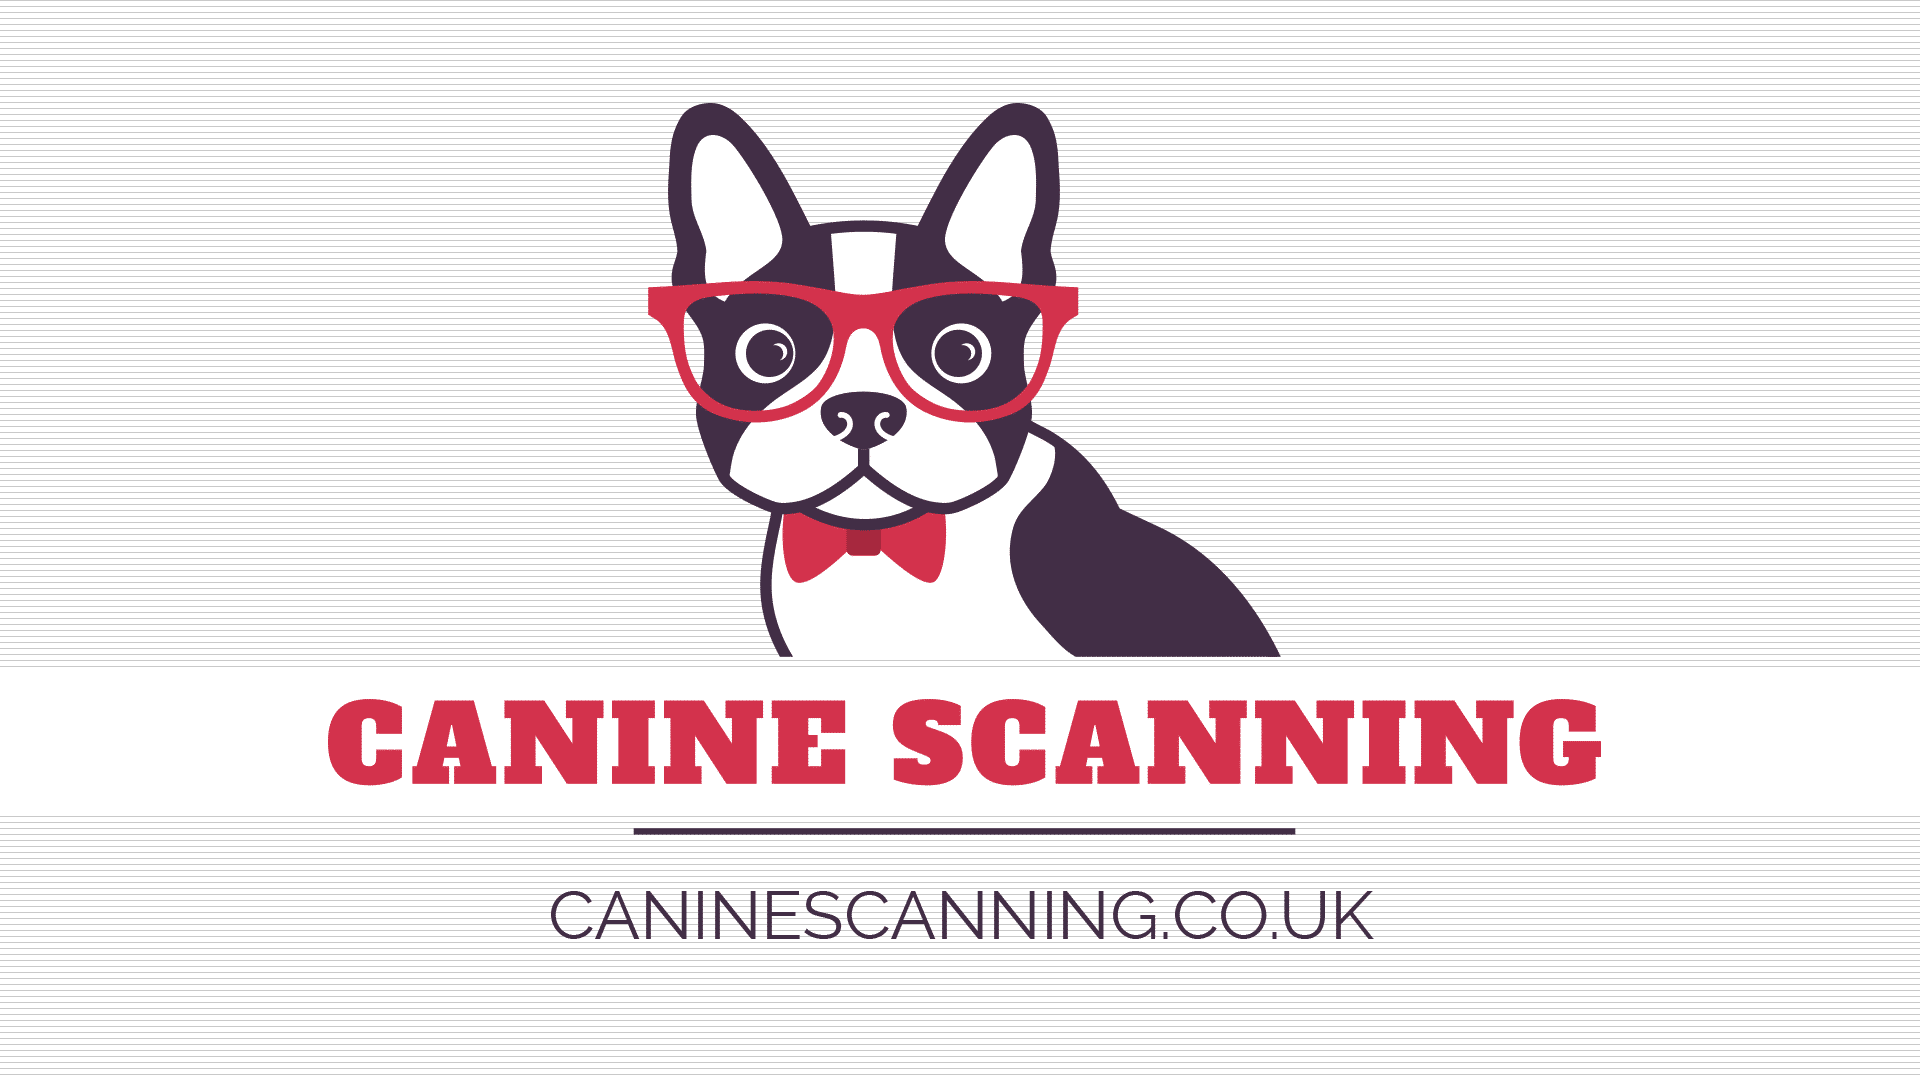 caninescanning.co.uk